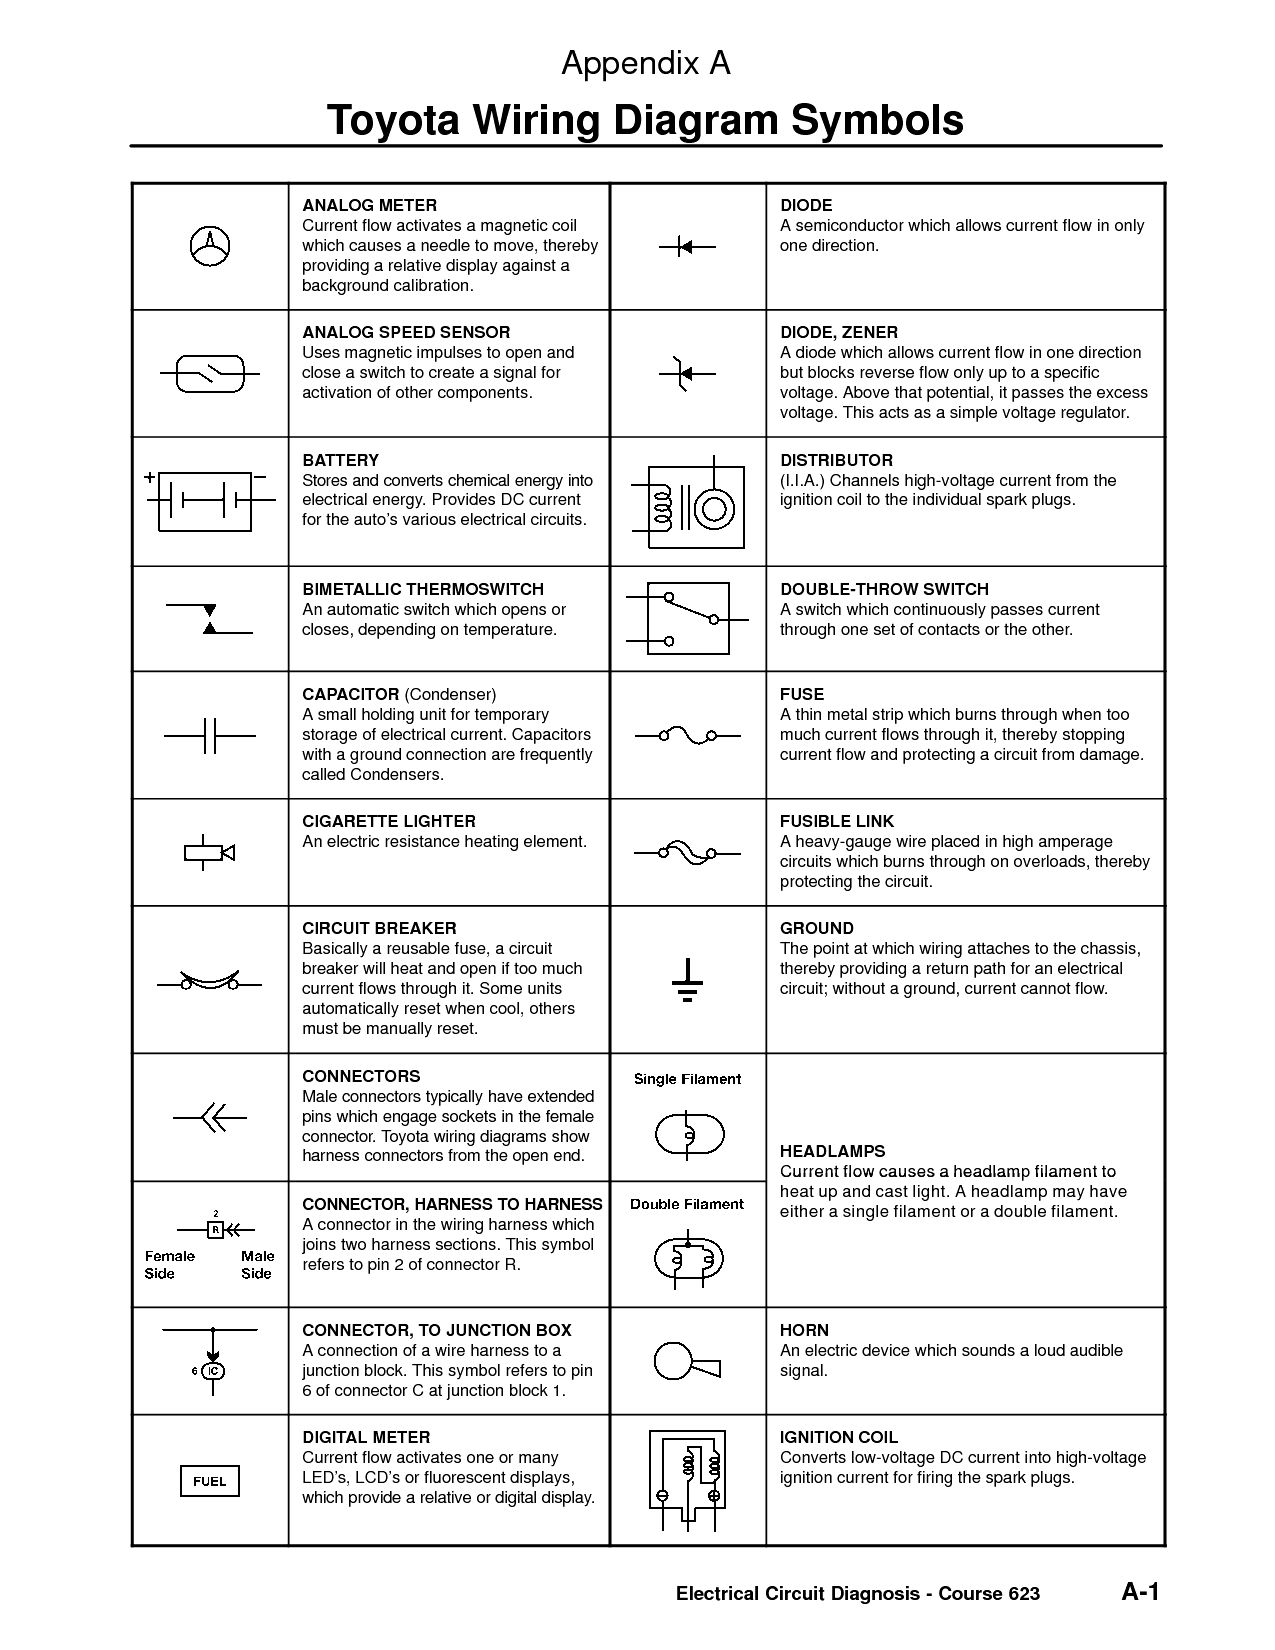 12 Volt Relay Wiring Diagram Symbols | Wiringdiagram - 12 Volt Relay Wiring Diagram